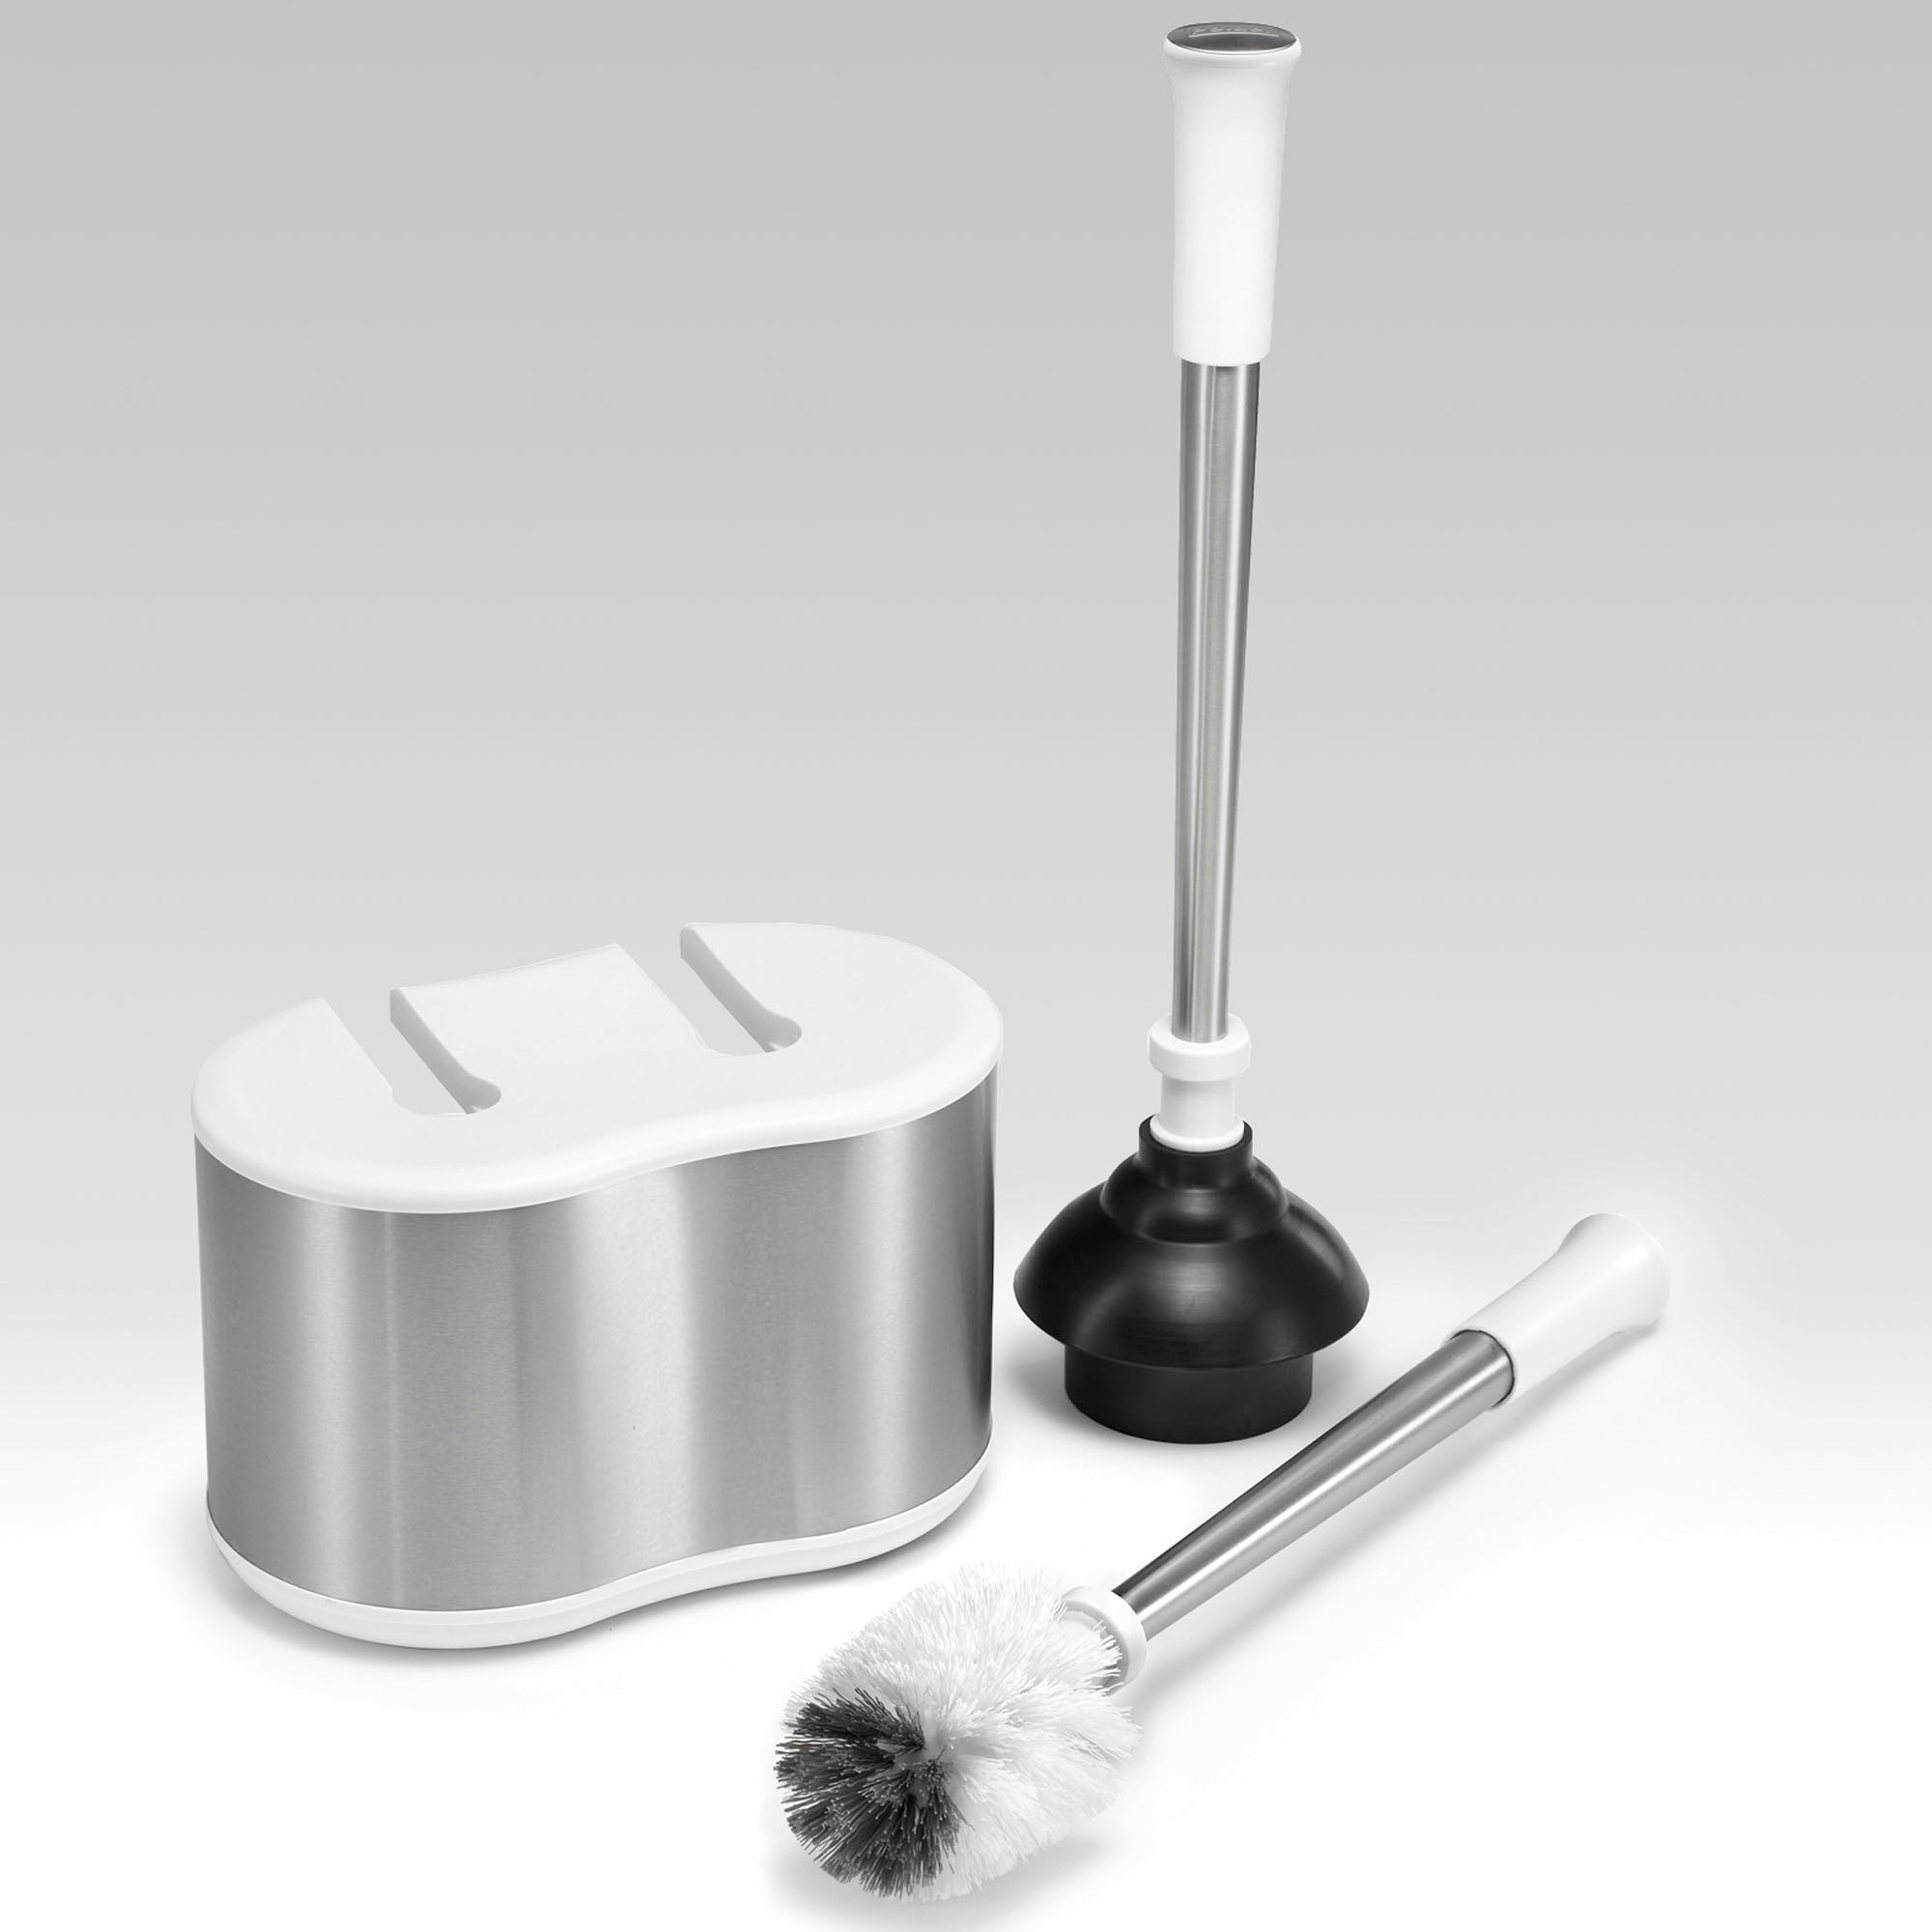 Toilet Bowl Brush And Plunger Caddy Set